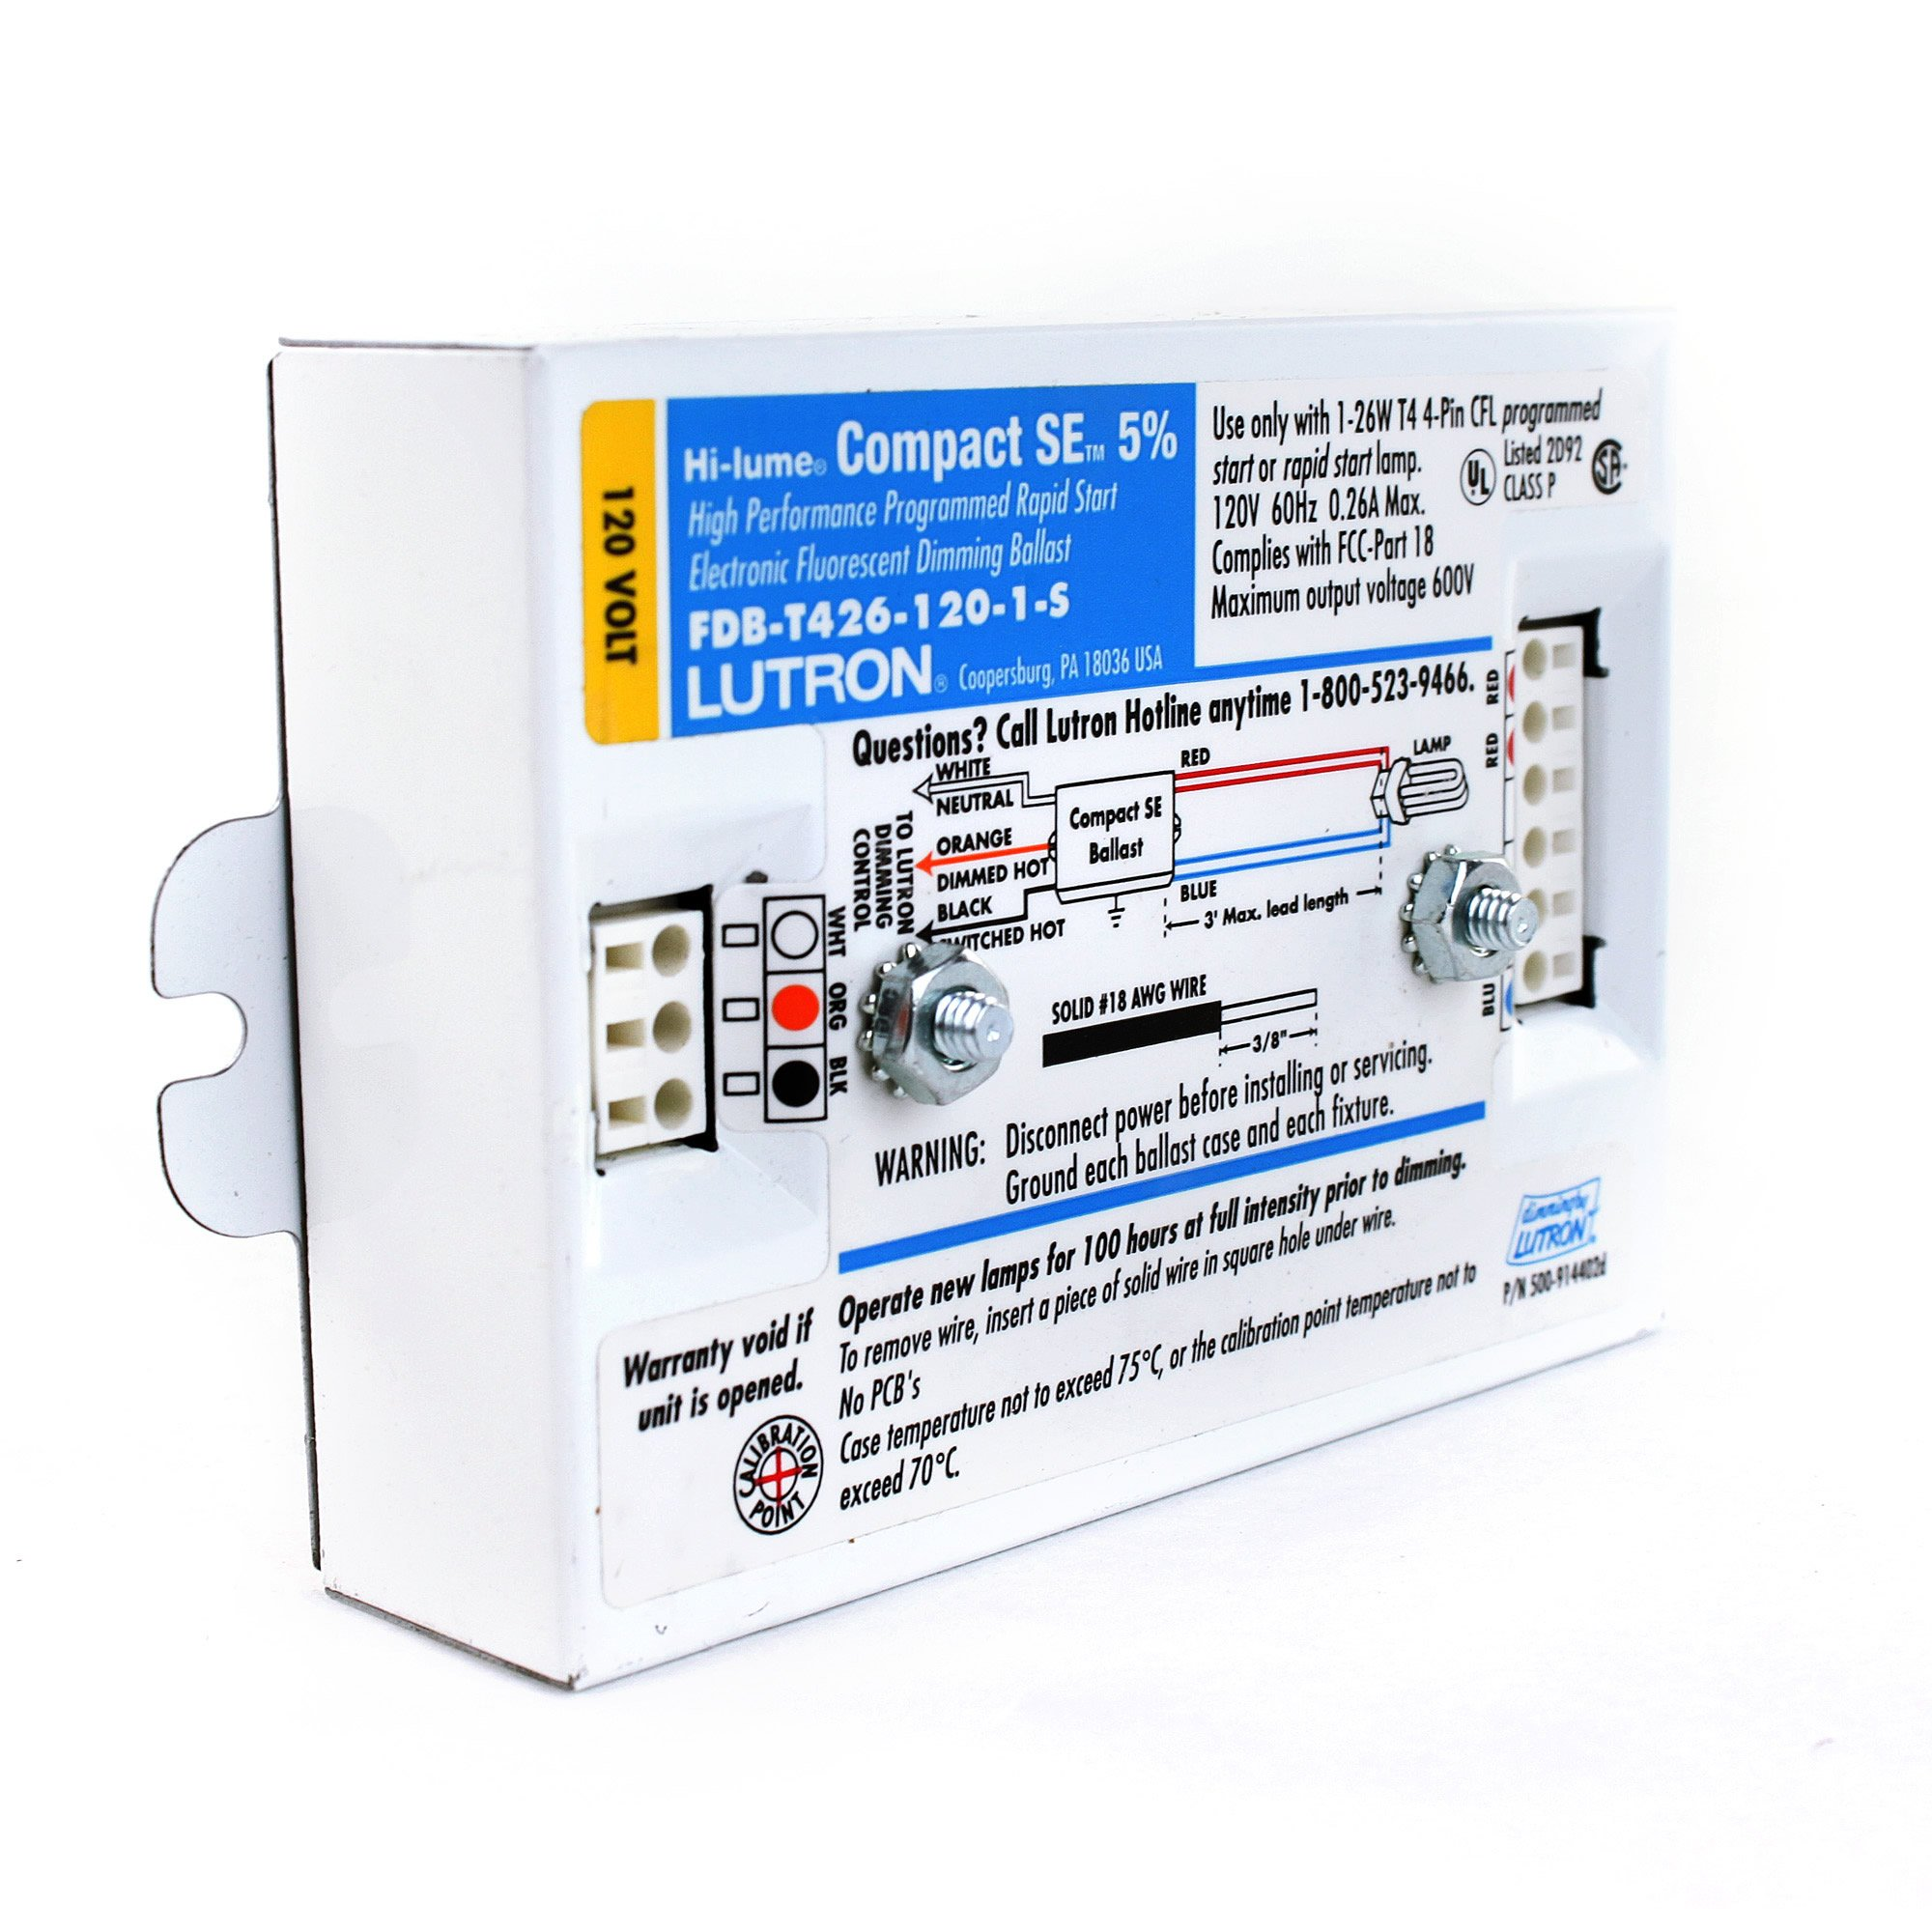 Lutron FDB-T426-120-1-S Hi-Lume Dimming Ballast, CFL Triple Tube, 1 Lamp, Fluorescent Compact Dimming Ballast by Lutron (Image #2)